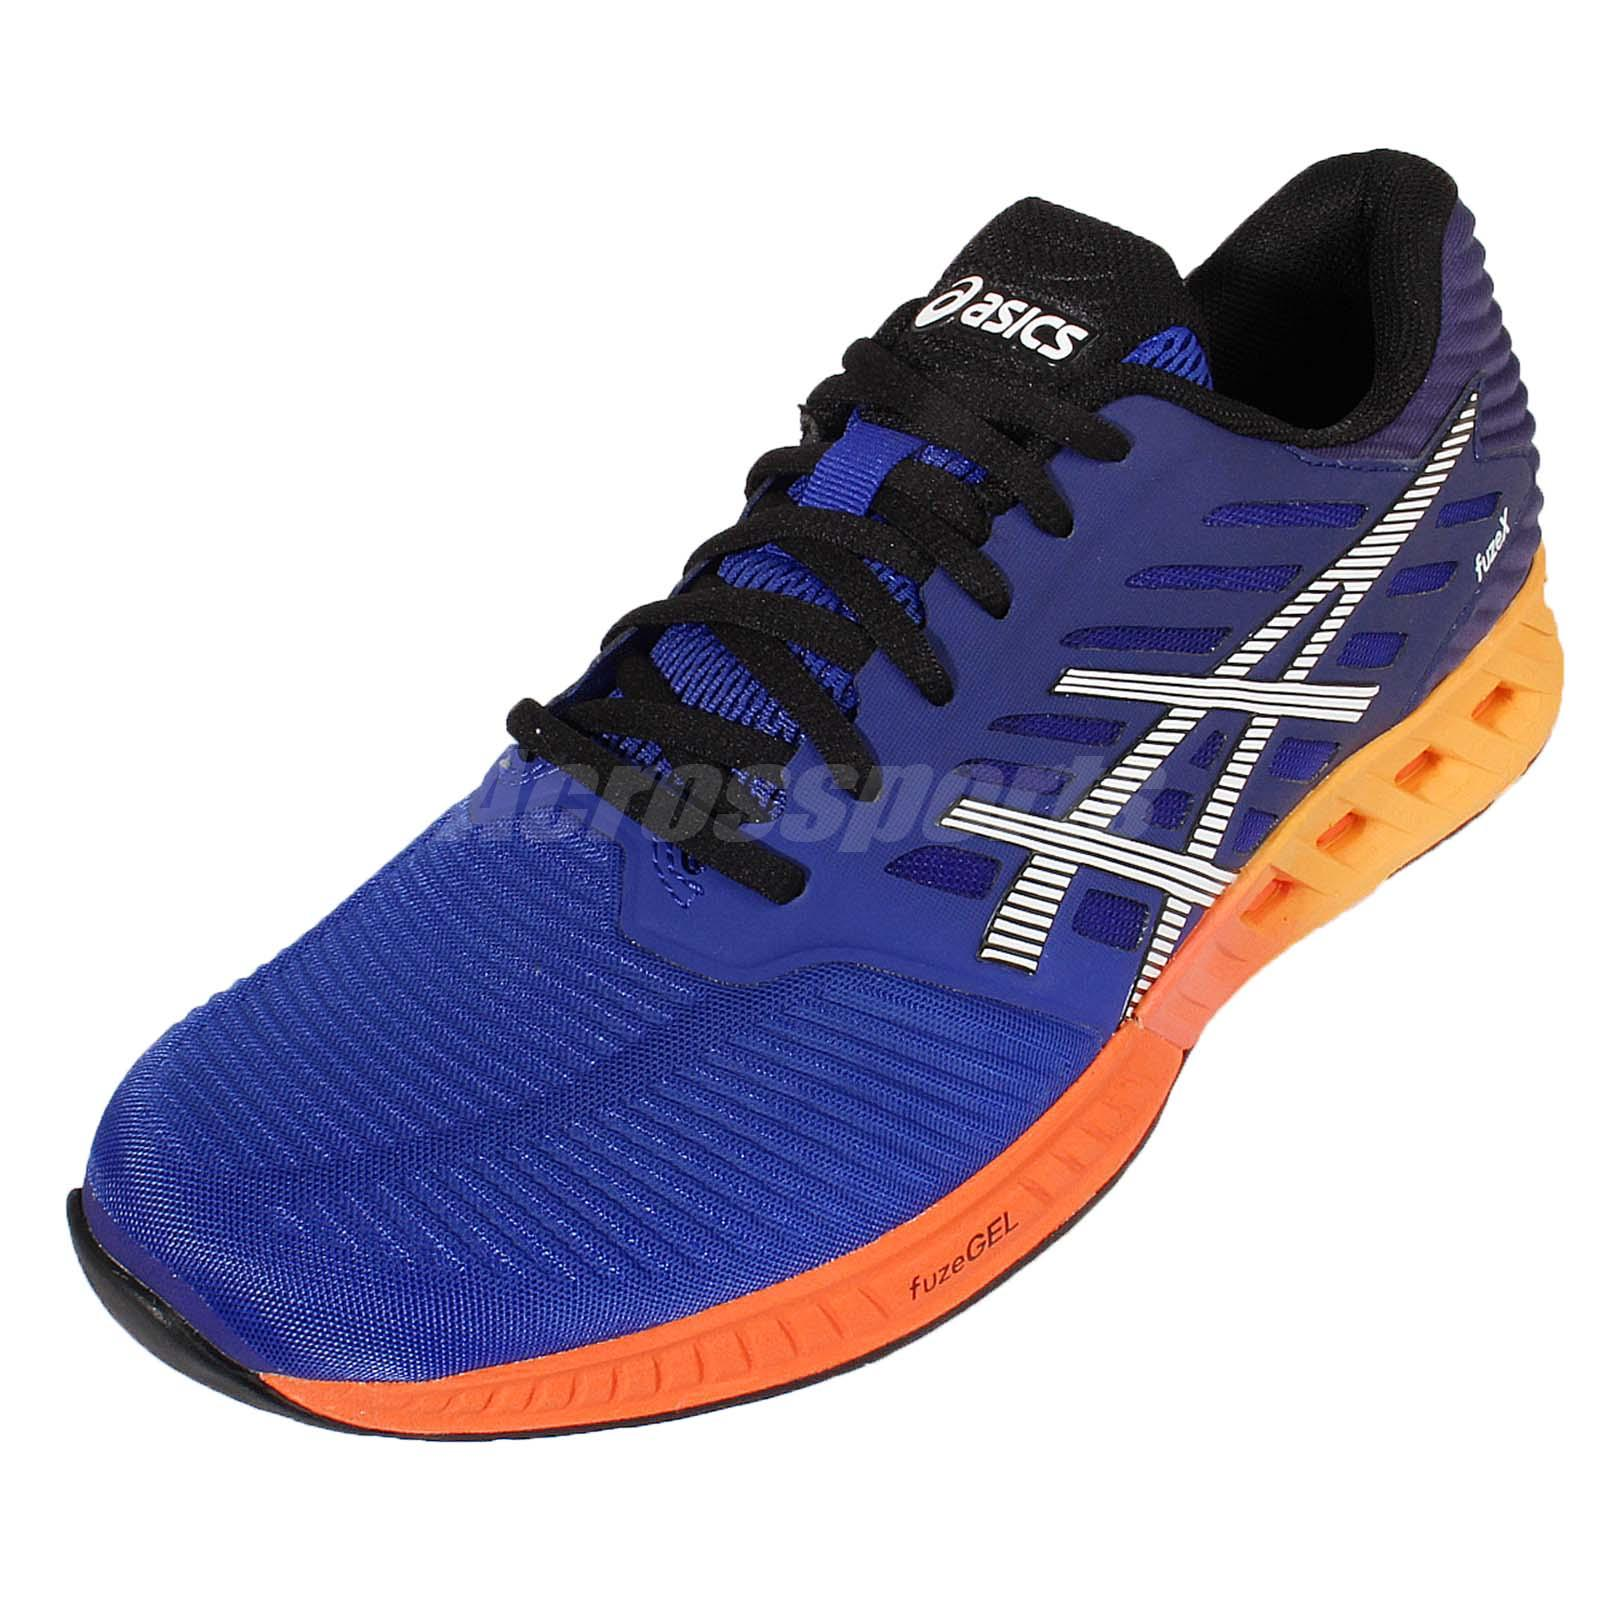 d17dfe01 Details about Asics FuzeX Navy Orange Mens Cushion Running Shoes Trainers  Sneakers T639N-4350